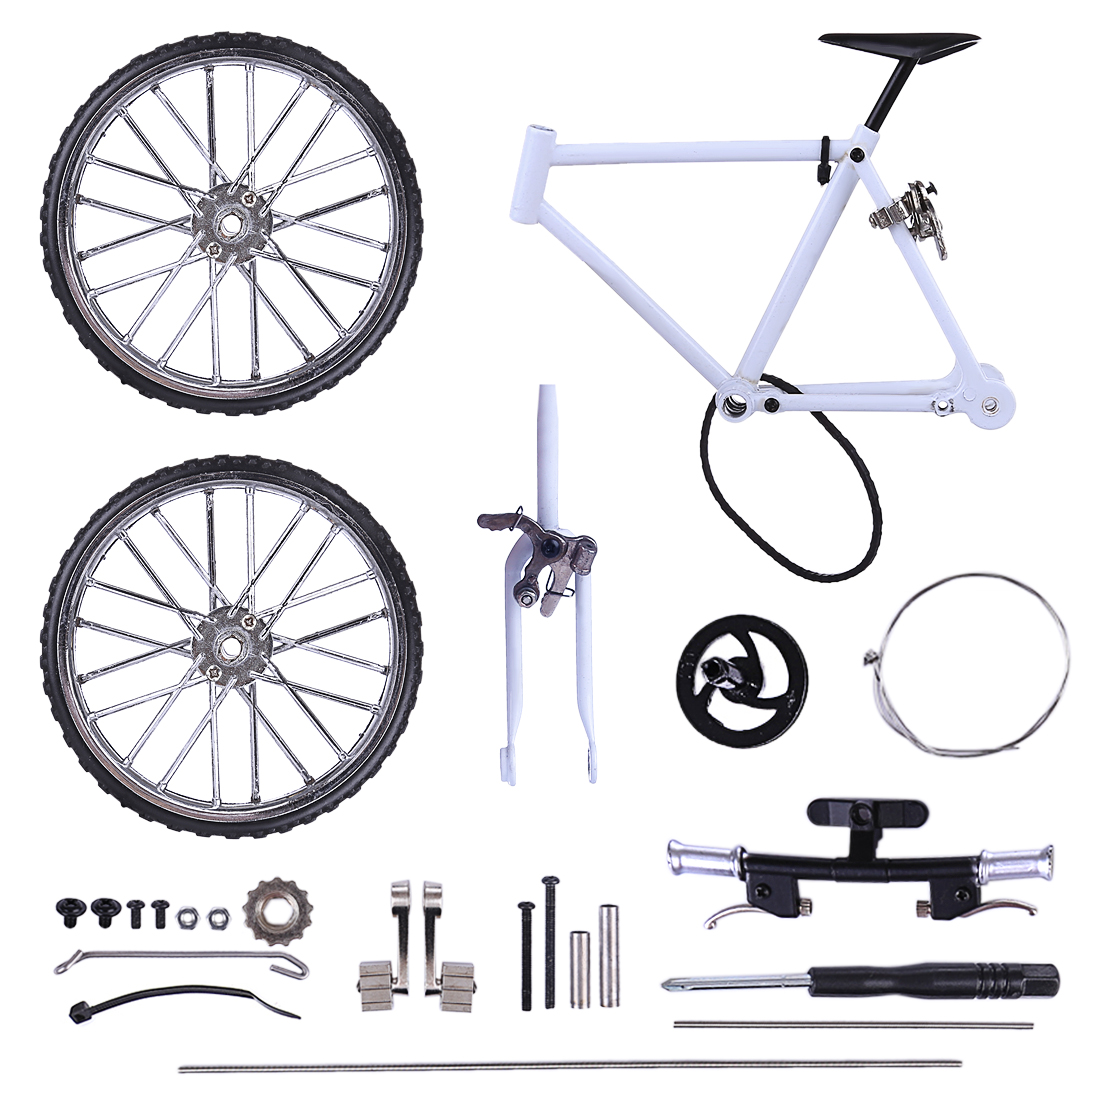 1:8 Assembly Simulated Mini DIY Bicycle MTB Bike Cycling Decoration Model Building Children Birthday Gift Early Education